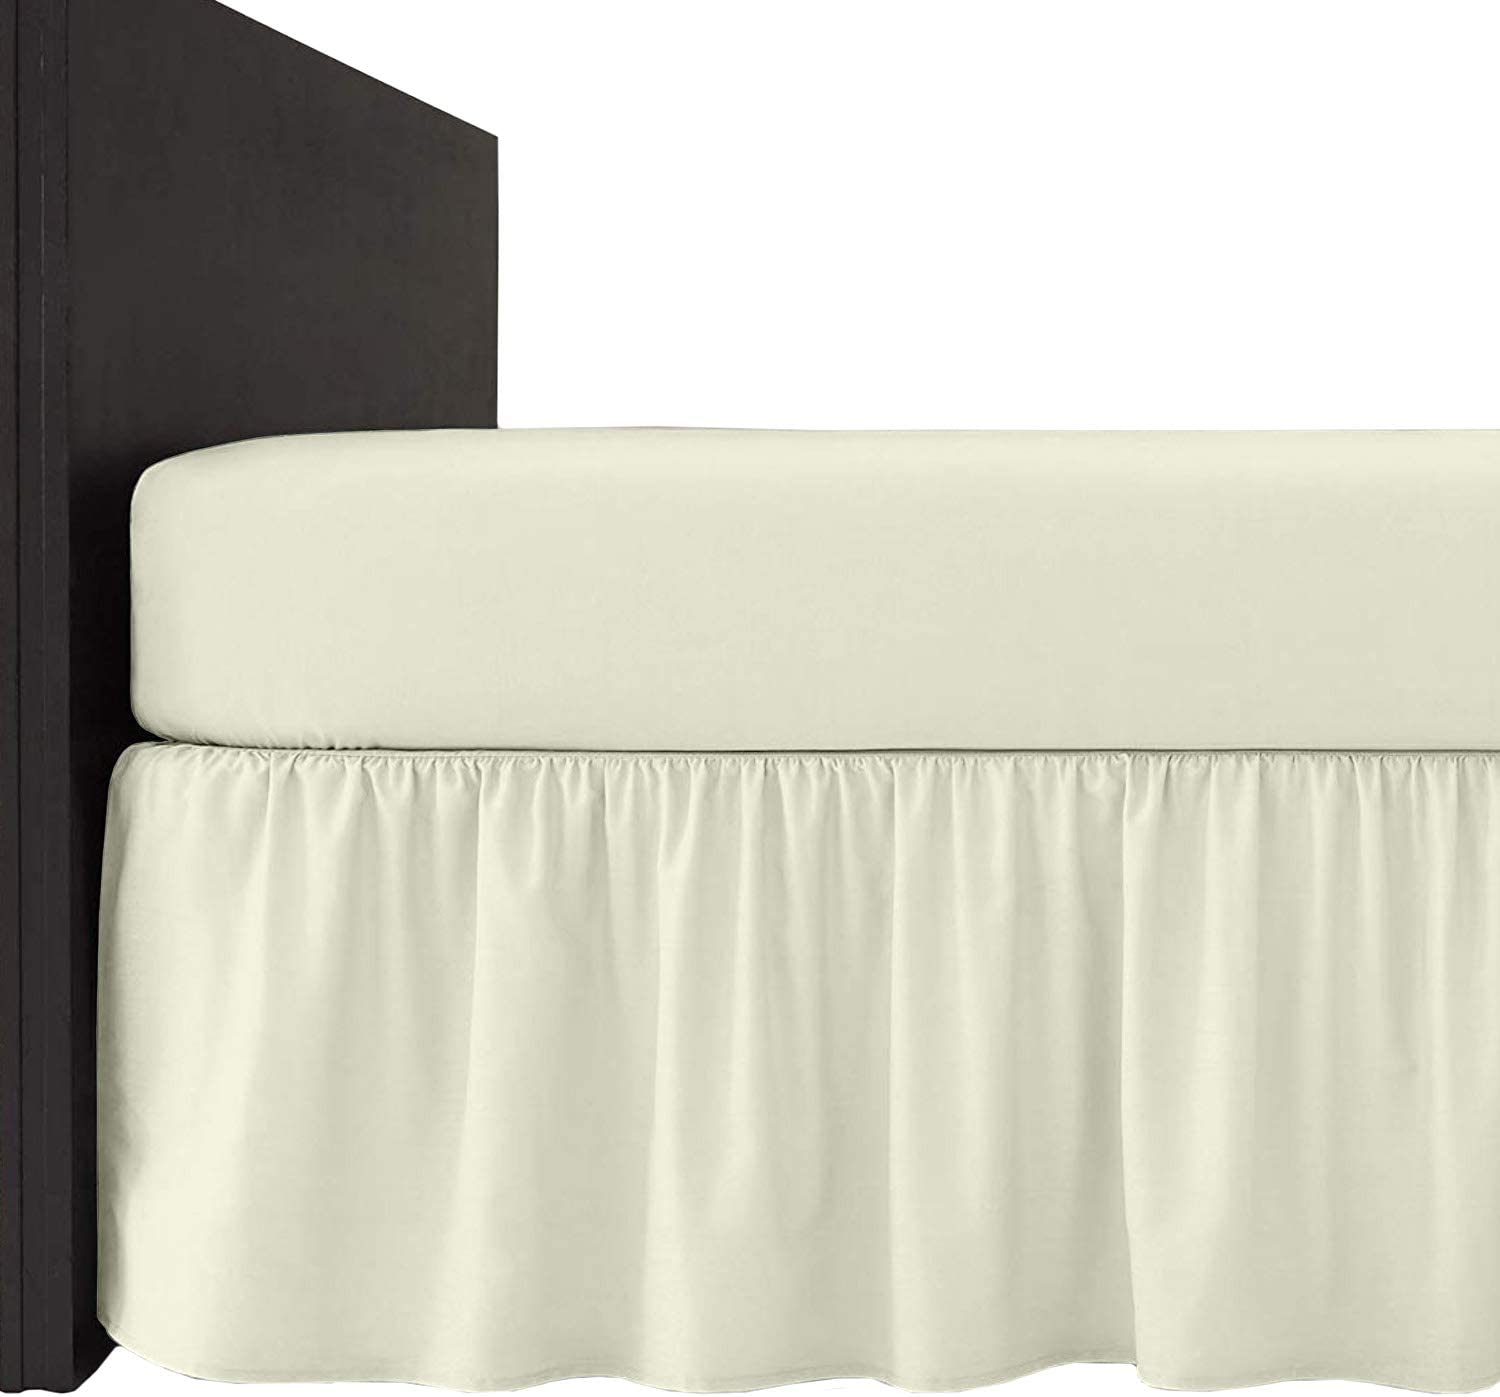 Homely Ideas 4 Ft Frilled Valance Fitted Bed Sheets 100/% Poly Cotton Plain Dyed Easy Care Bedding And Linen. Cream, 4ft. Frilled Valance Sheet